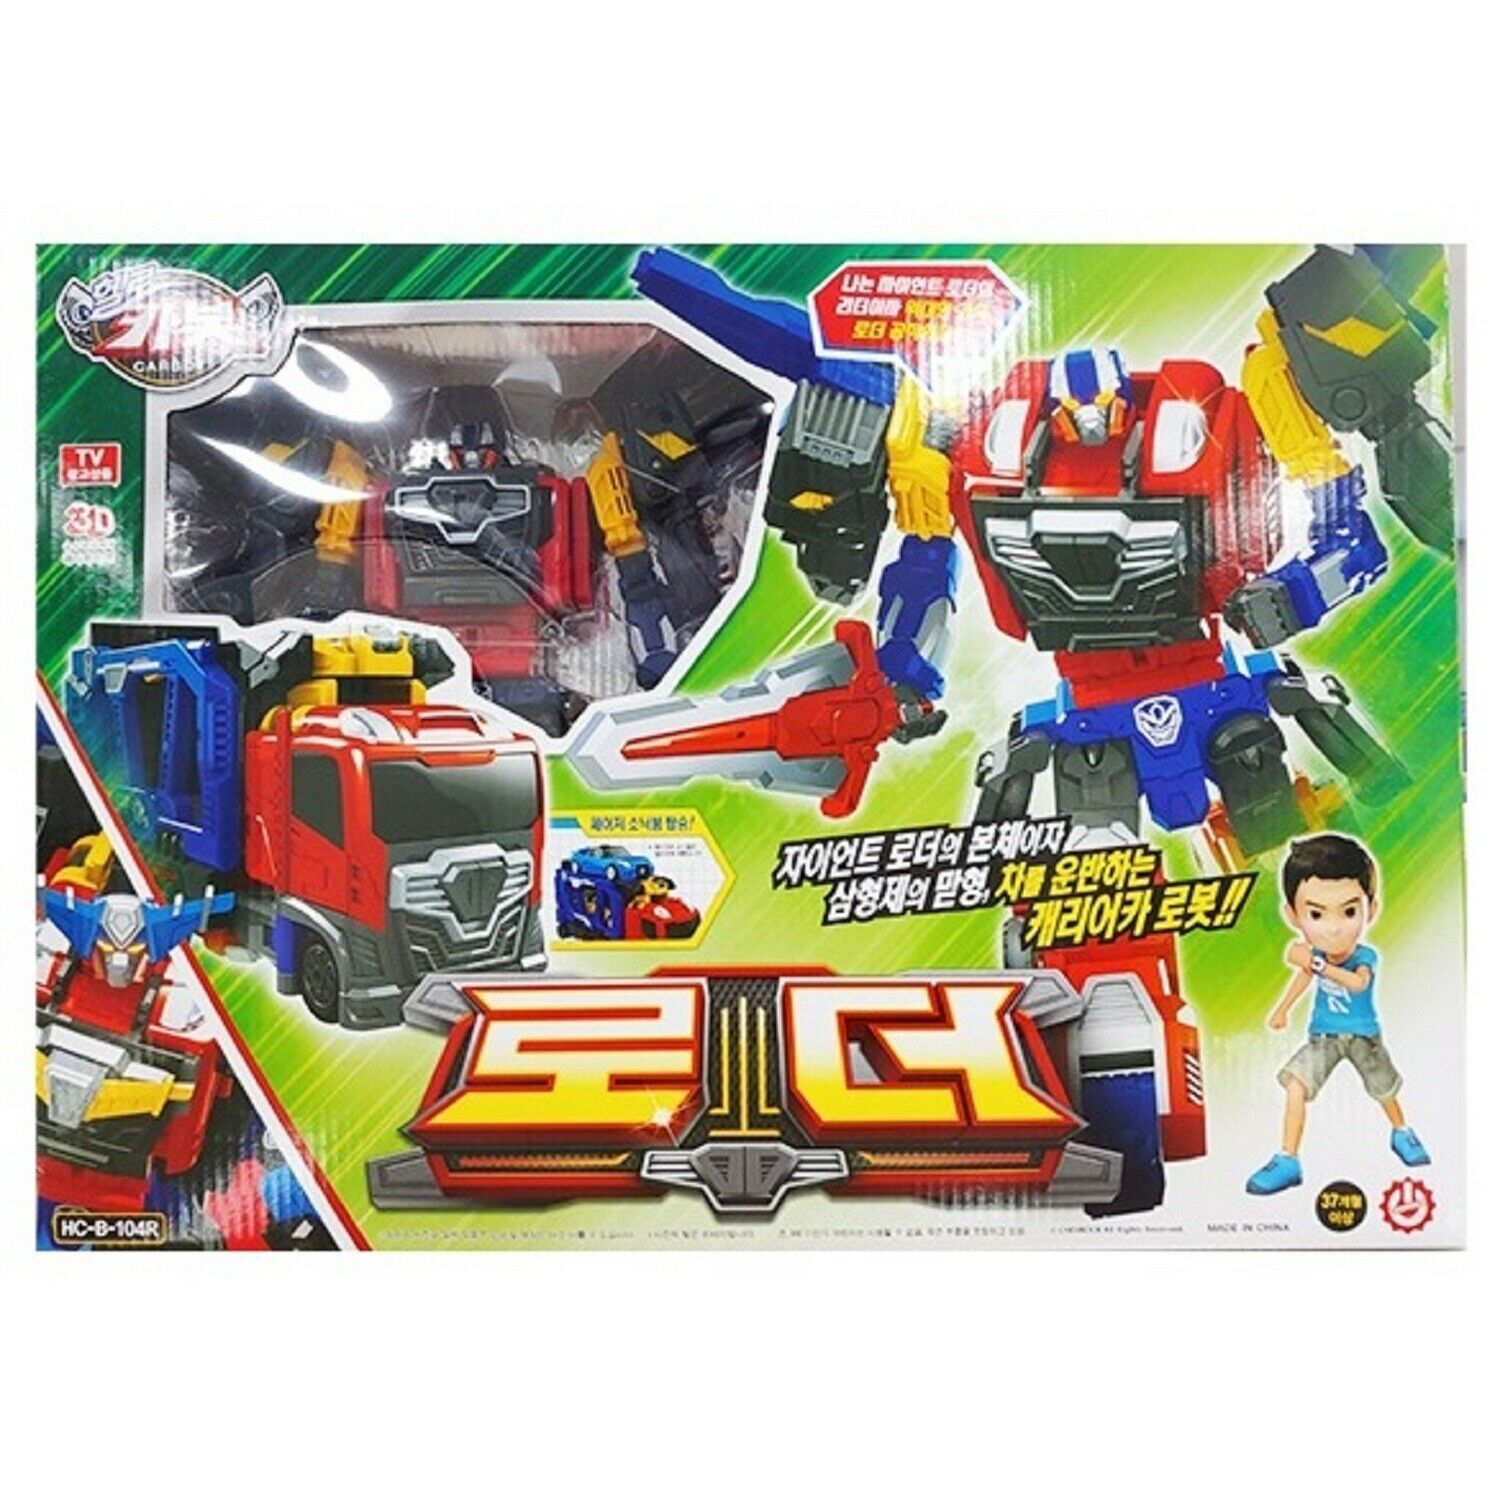 Hello Carbot Loader Carrier Car Vehicle Transforming Robot Toy Action Figure